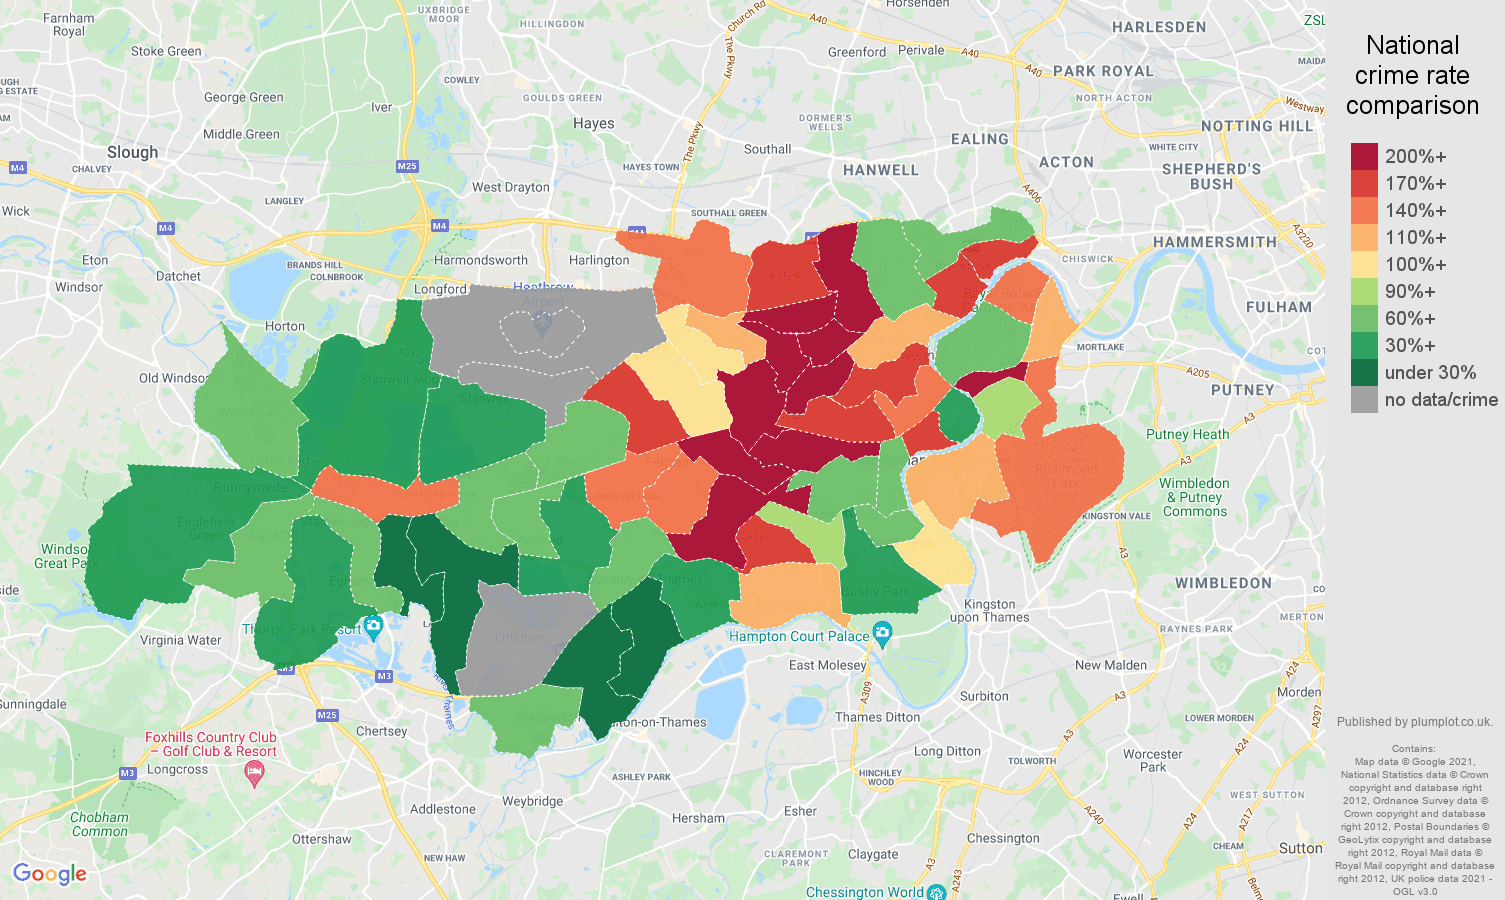 Twickenham robbery crime rate comparison map